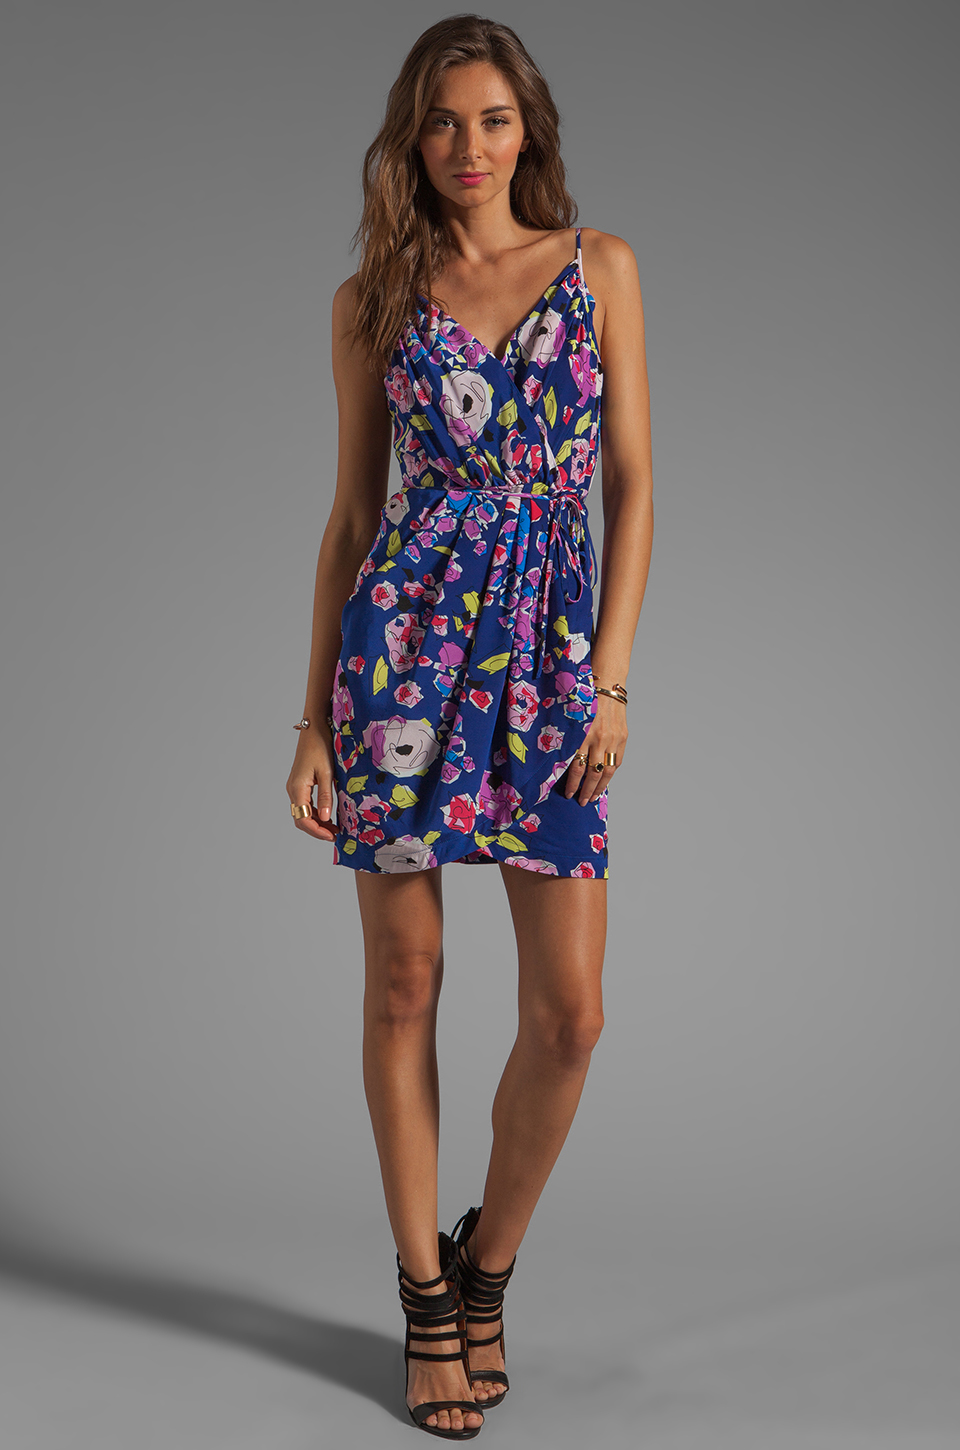 Yumi Kim Jayne Dress in Navy Kira Floral